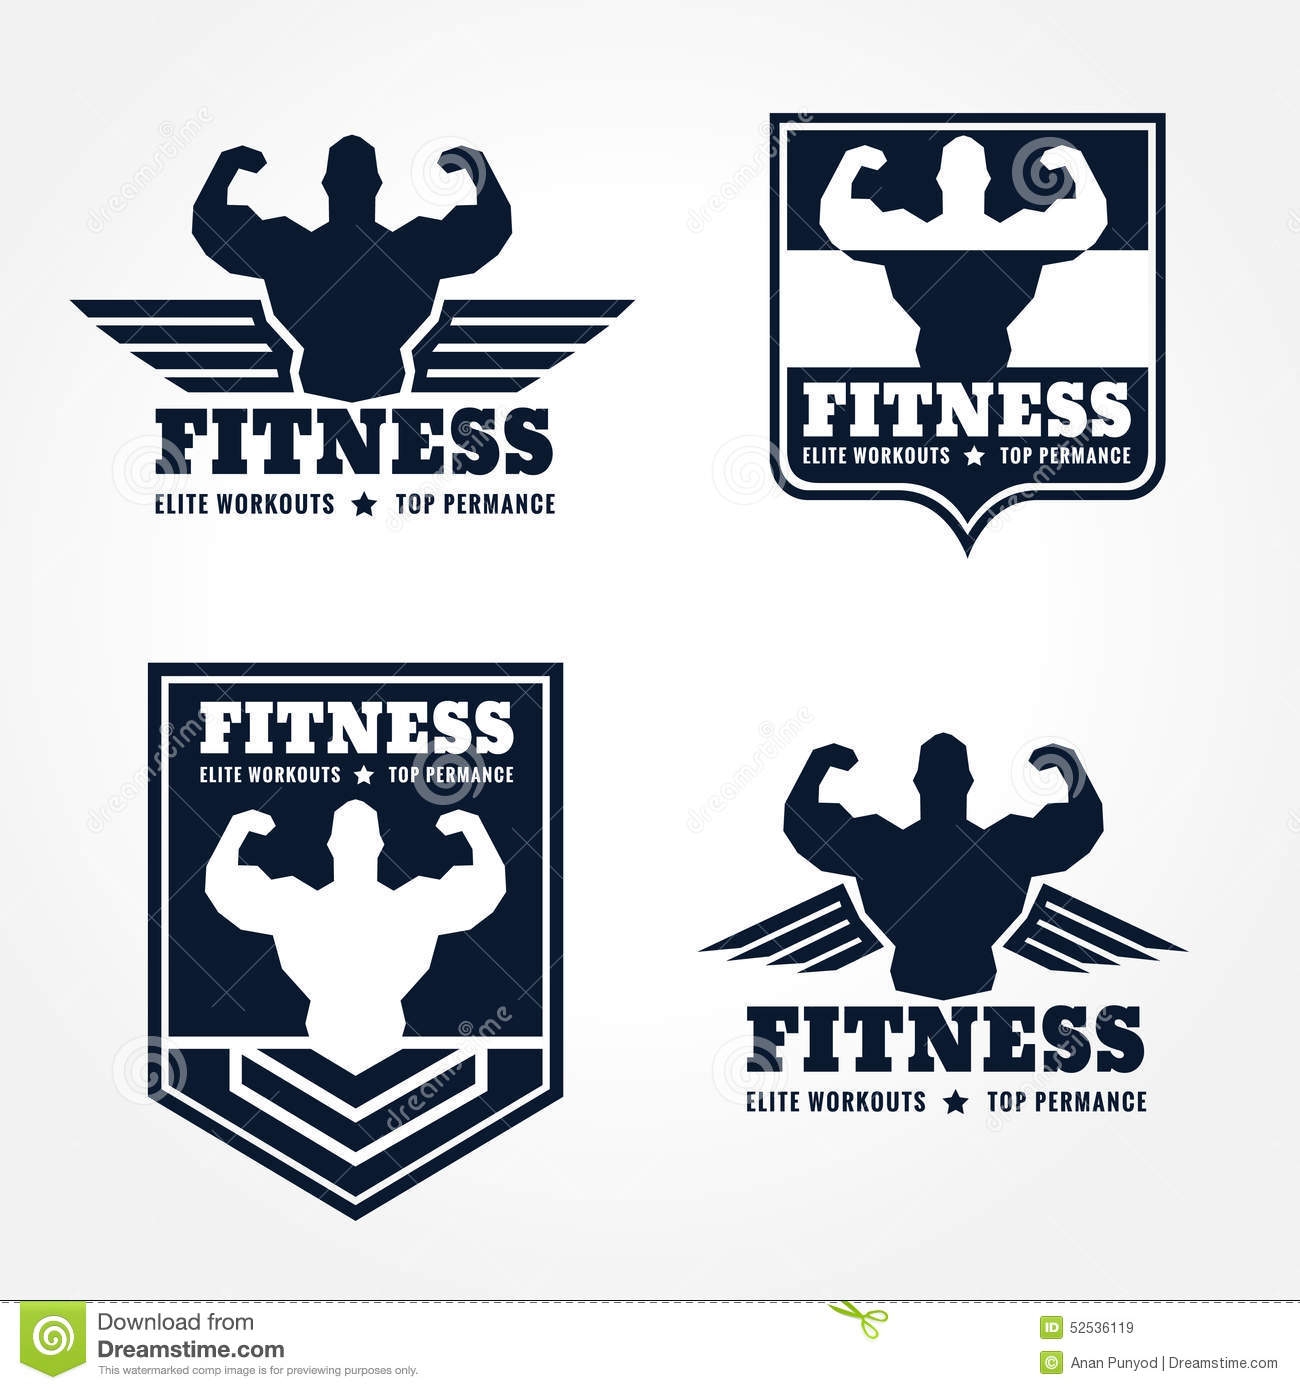 fitness logo emblems in retro style graphic design  wings and muscle blue